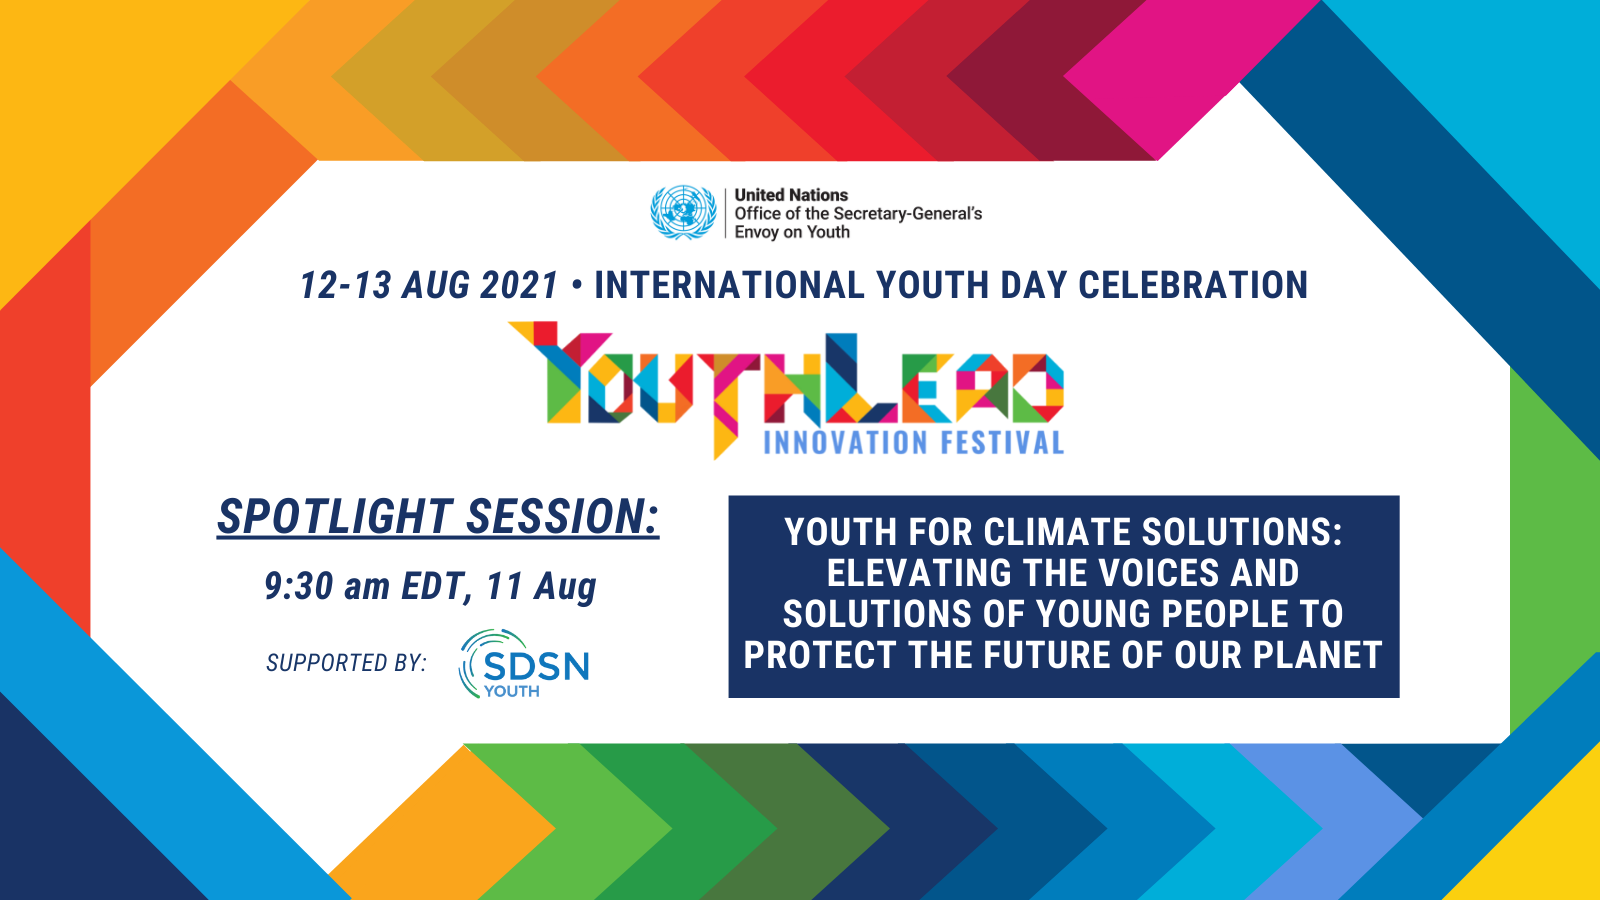 Celebrating youth-led climate solutions at the #YouthLead Innovation Festival